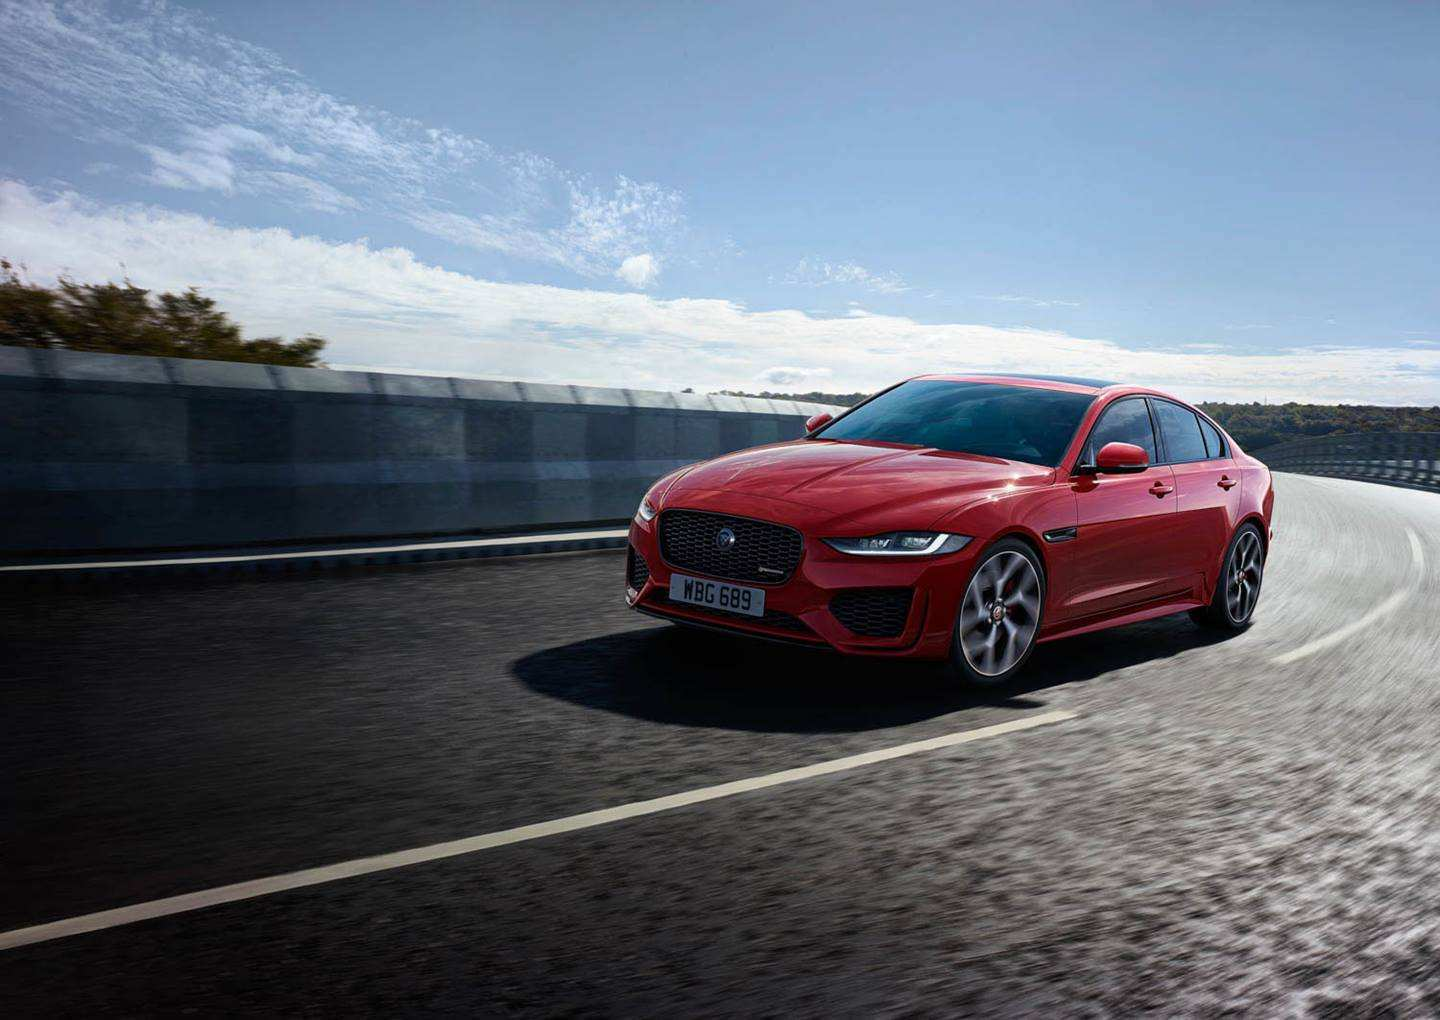 36 Concept of Jaguar Xe May 2020 Images by Jaguar Xe May 2020